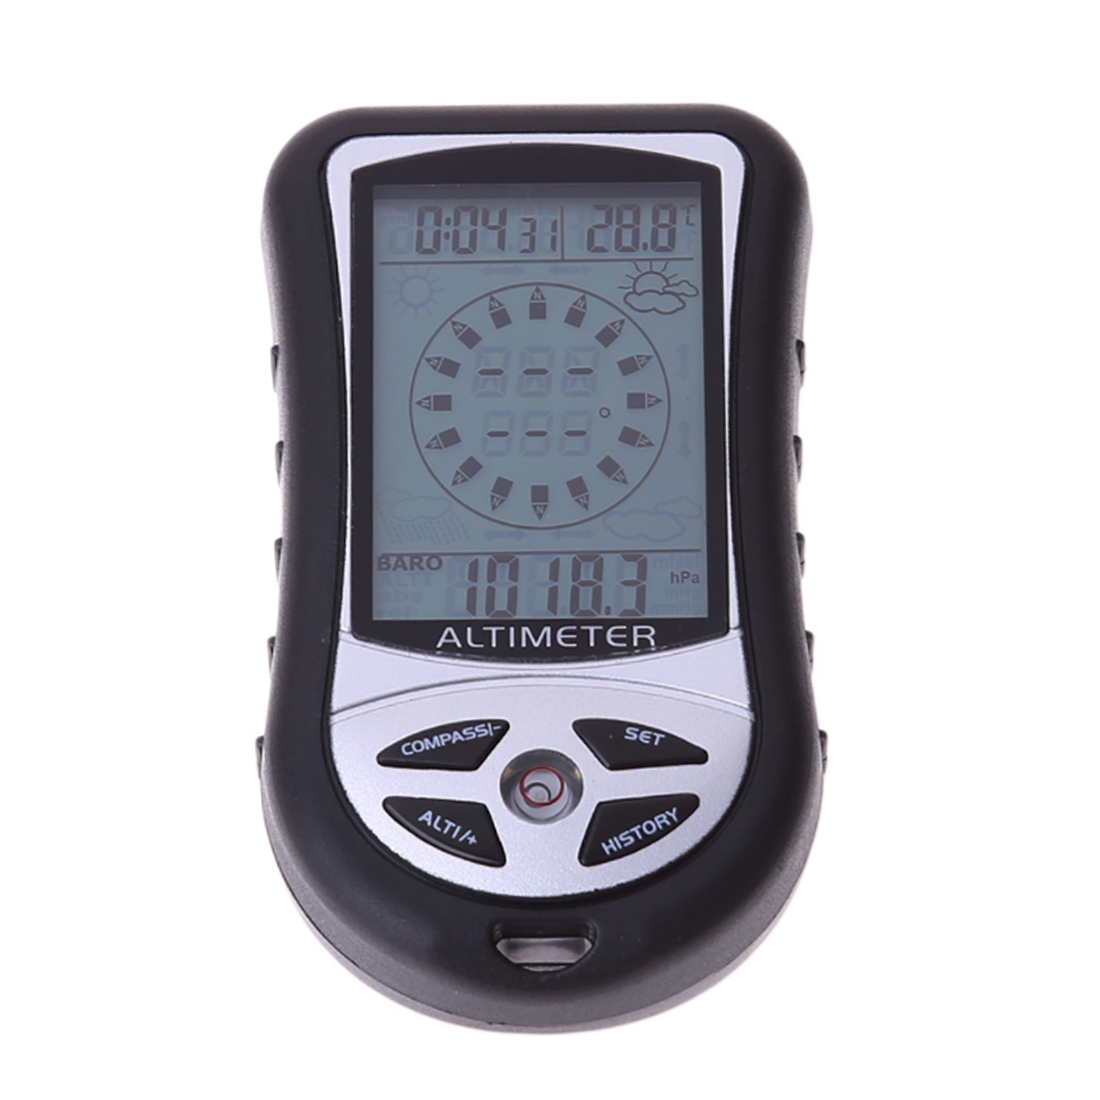 Guide 8 In 1 LCD Digital Altimeter Barometer Thermometer Weather Forecast History Clock Calendar Compass For Hiking Hunting